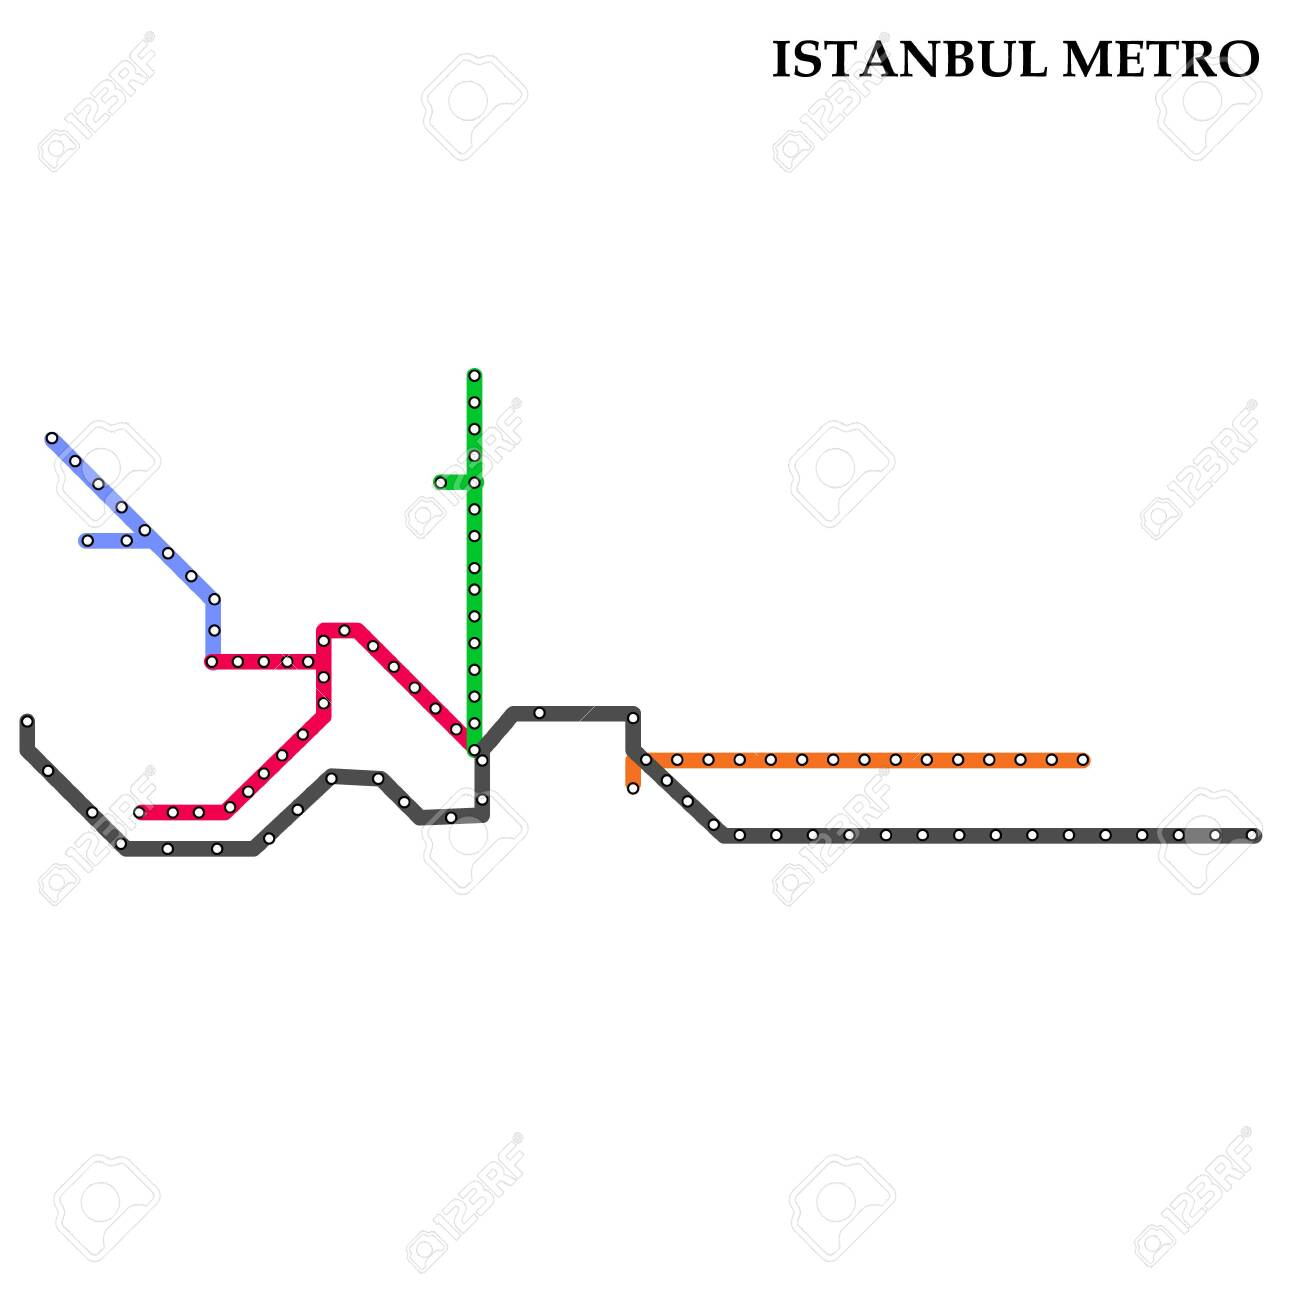 Subway Map Of Istanbul.Map Of The Istanbul Metro Subway Template Of City Transportation